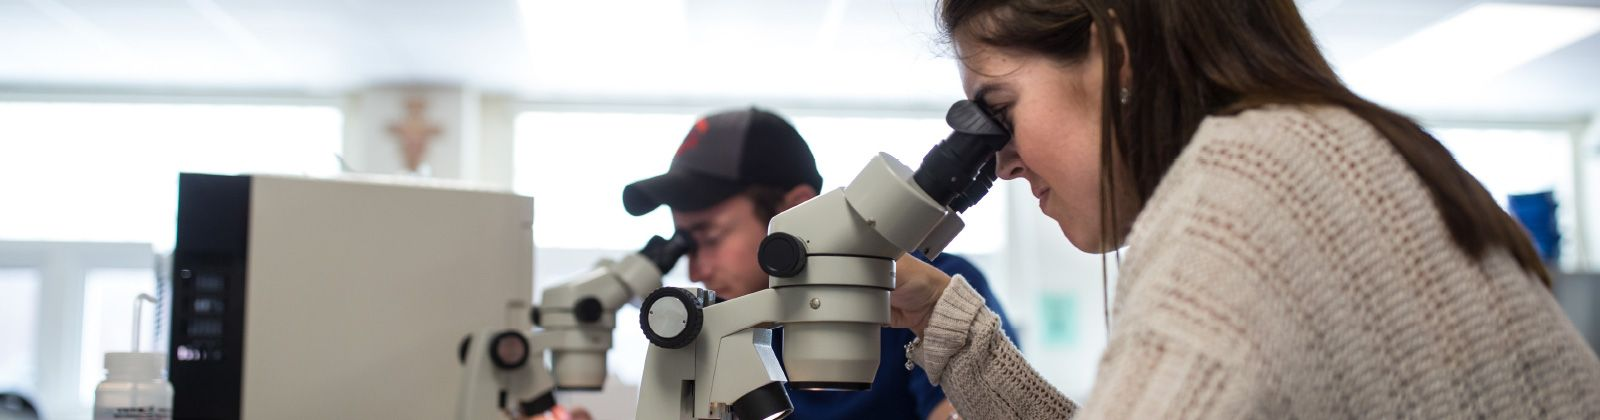 biology lab student with microscope